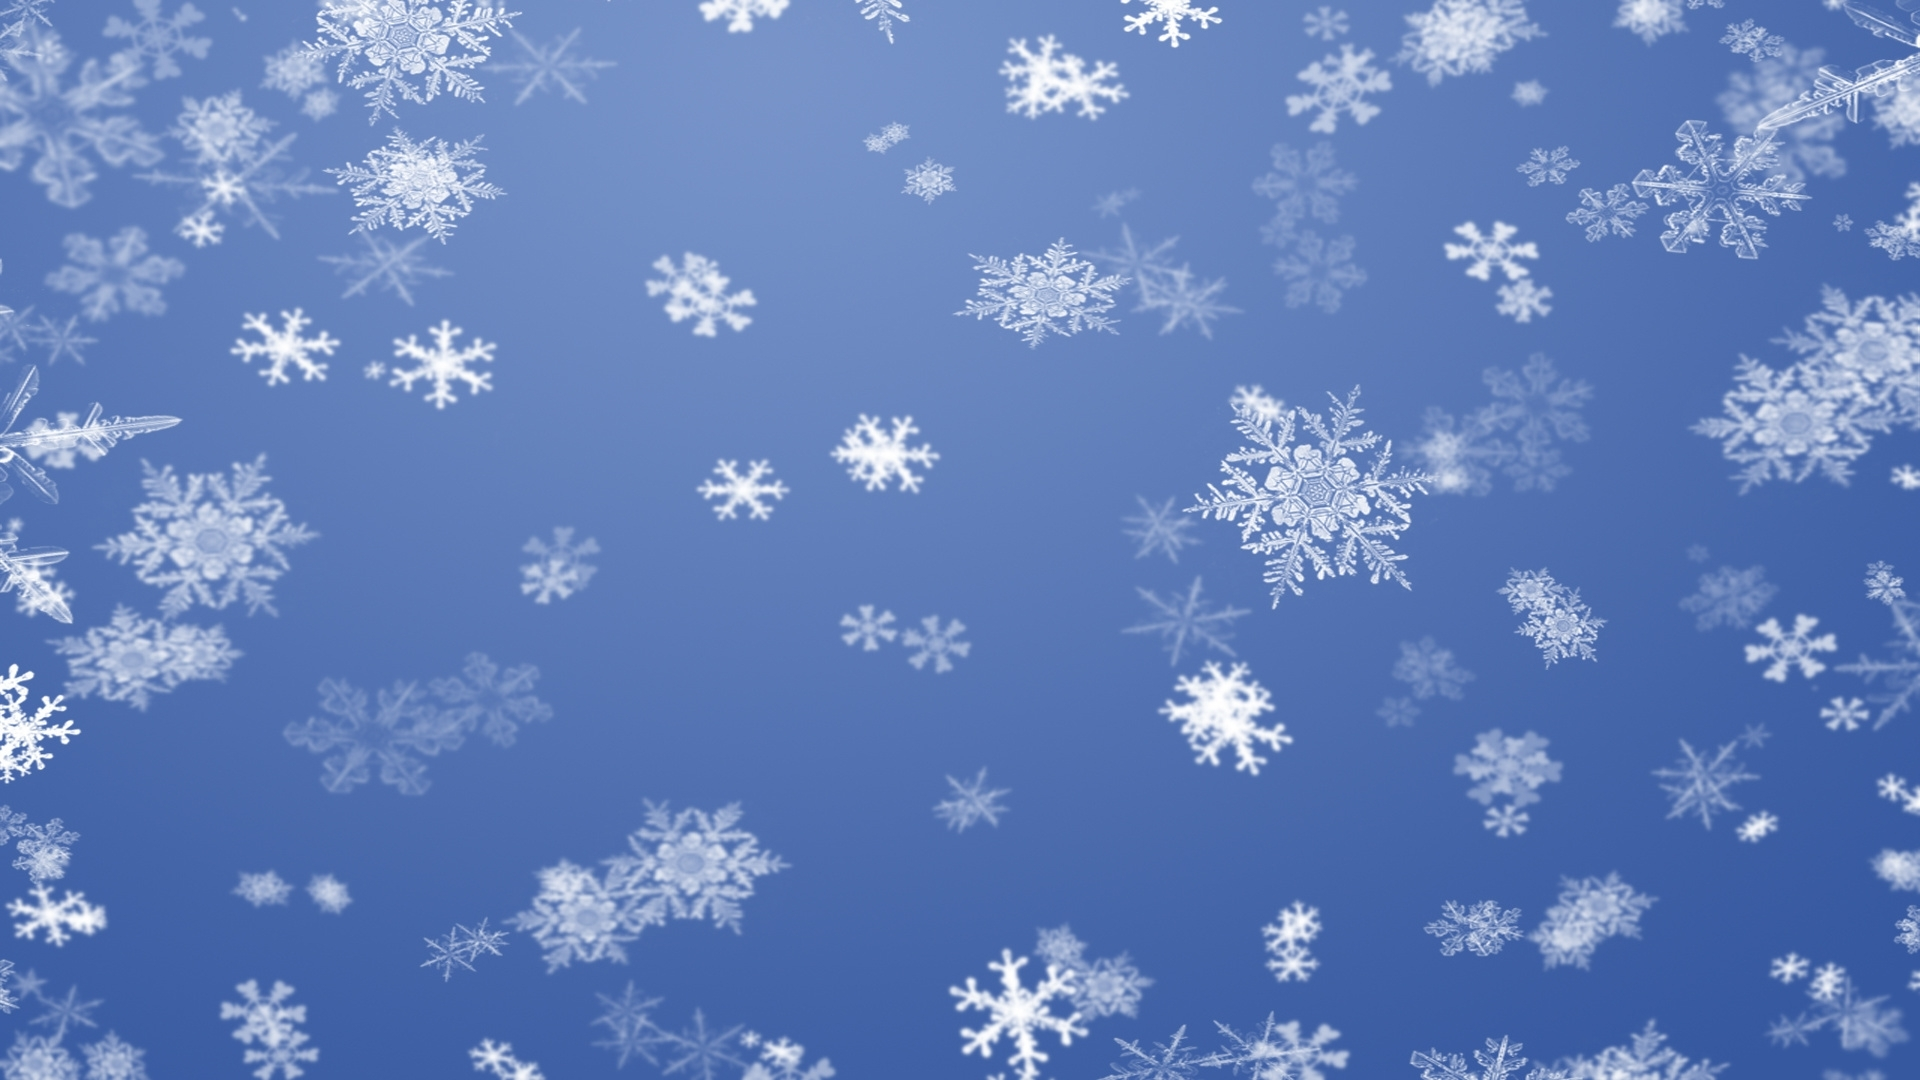 download-wallpaper-snowflake-wallpaper-x-background